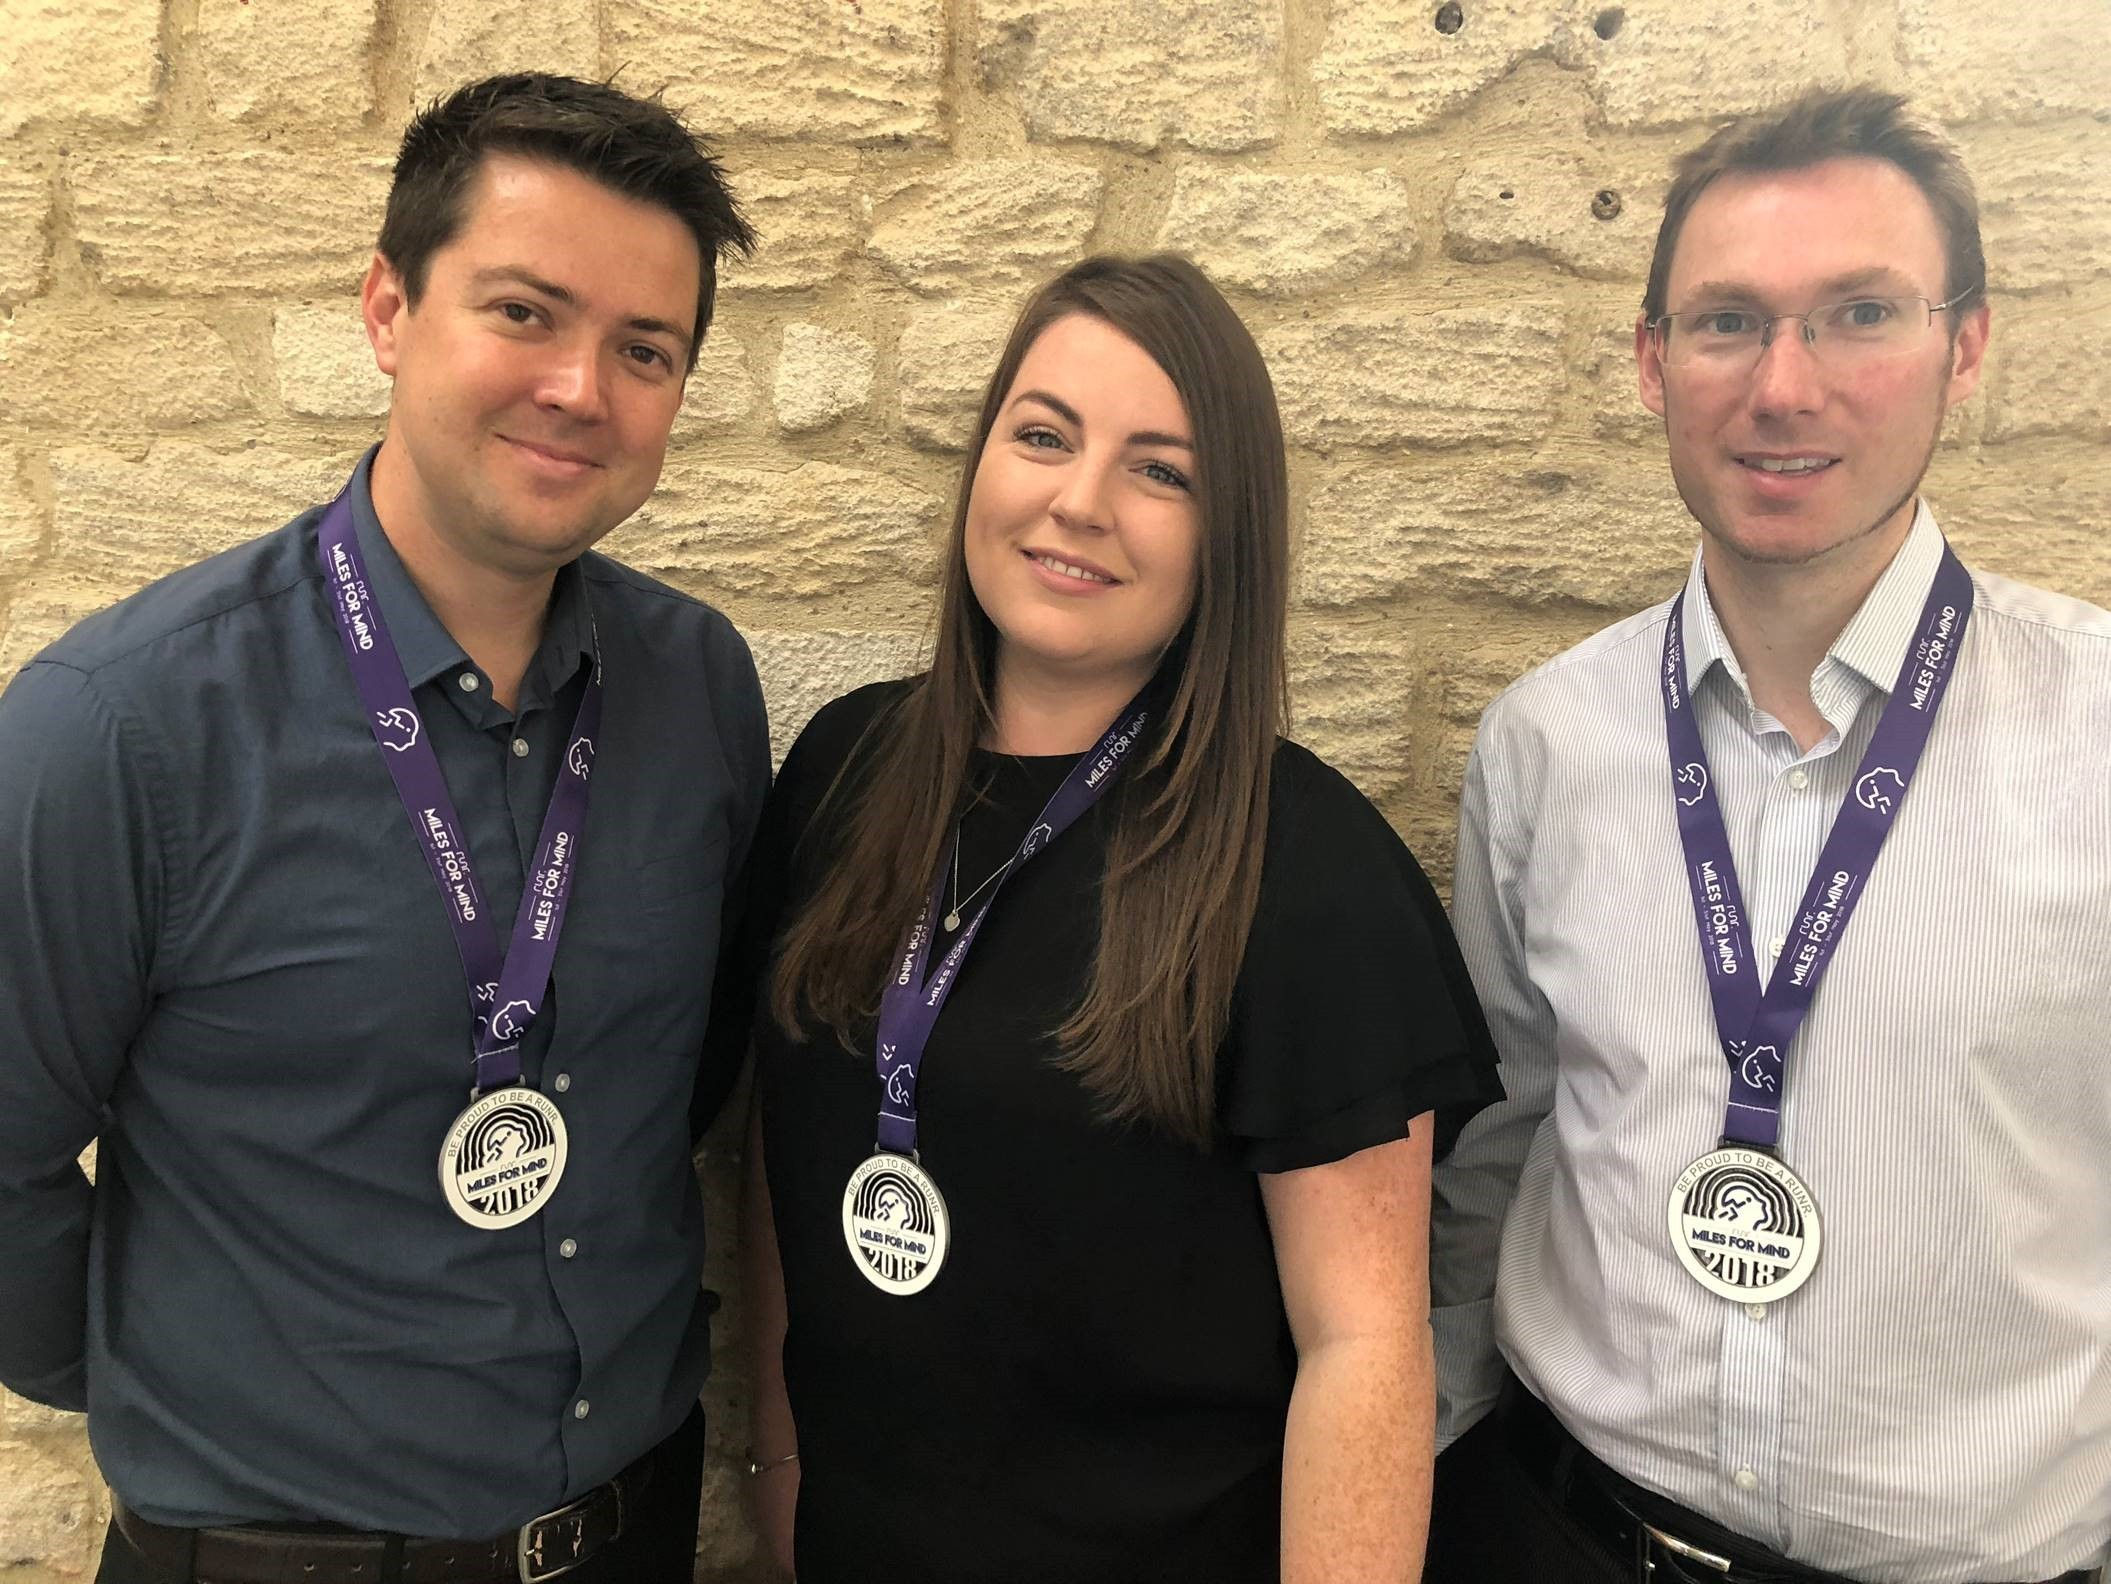 Mark Salen, Harriet Brooks and James Eades with their Miles For Mind medals.